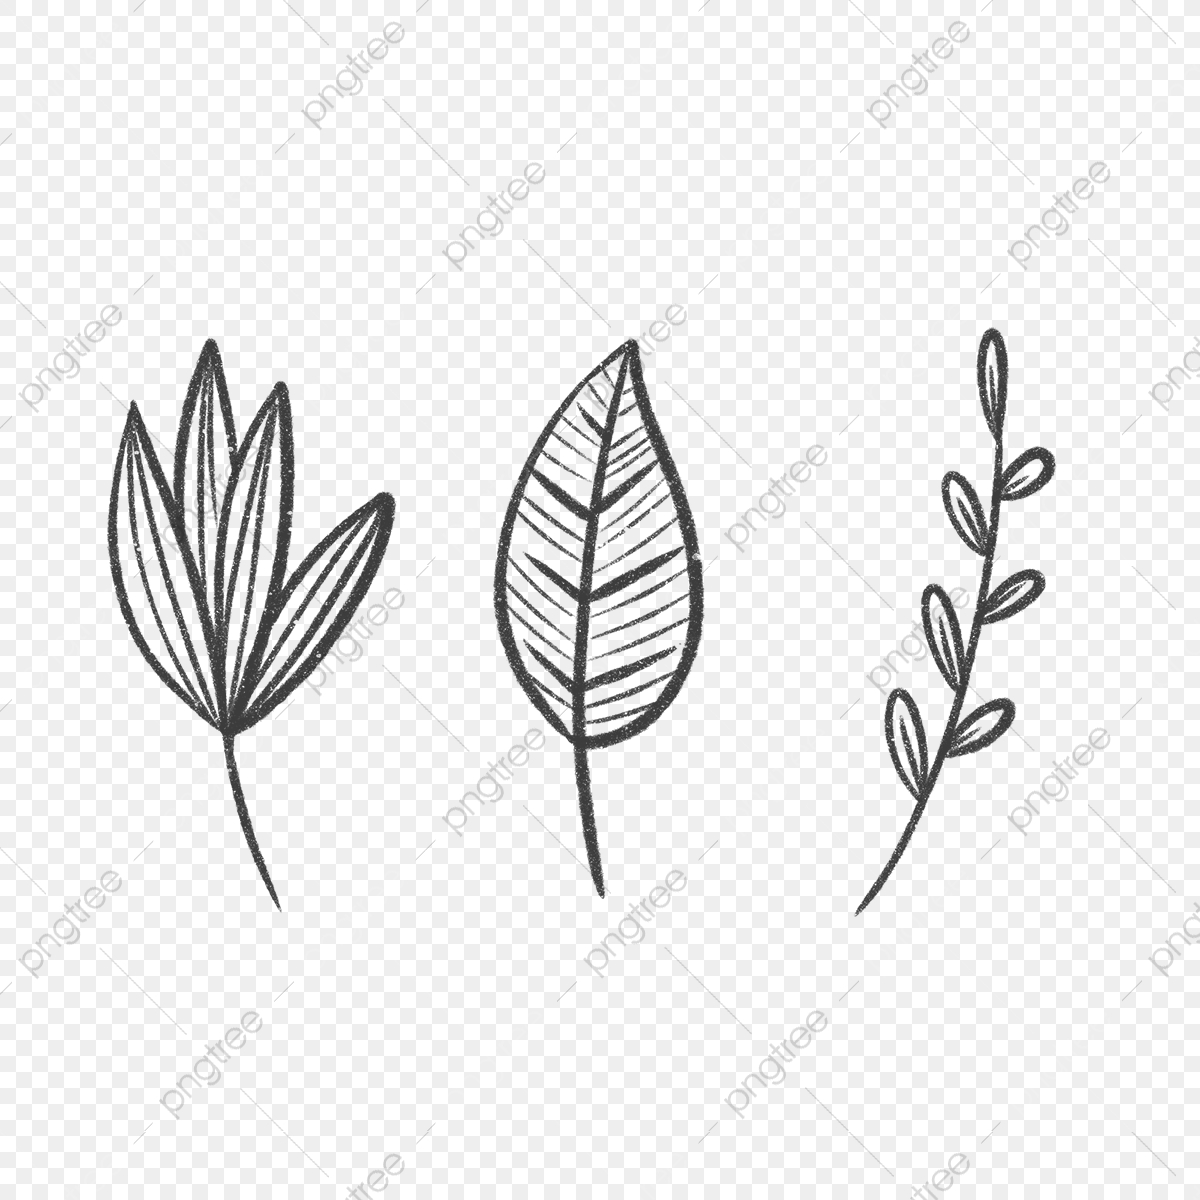 Download Png Leaves Drawing Png Gif Base Perfect for making design projects, wedding stationery, branding, florist boutique and more. download png leaves drawing png gif